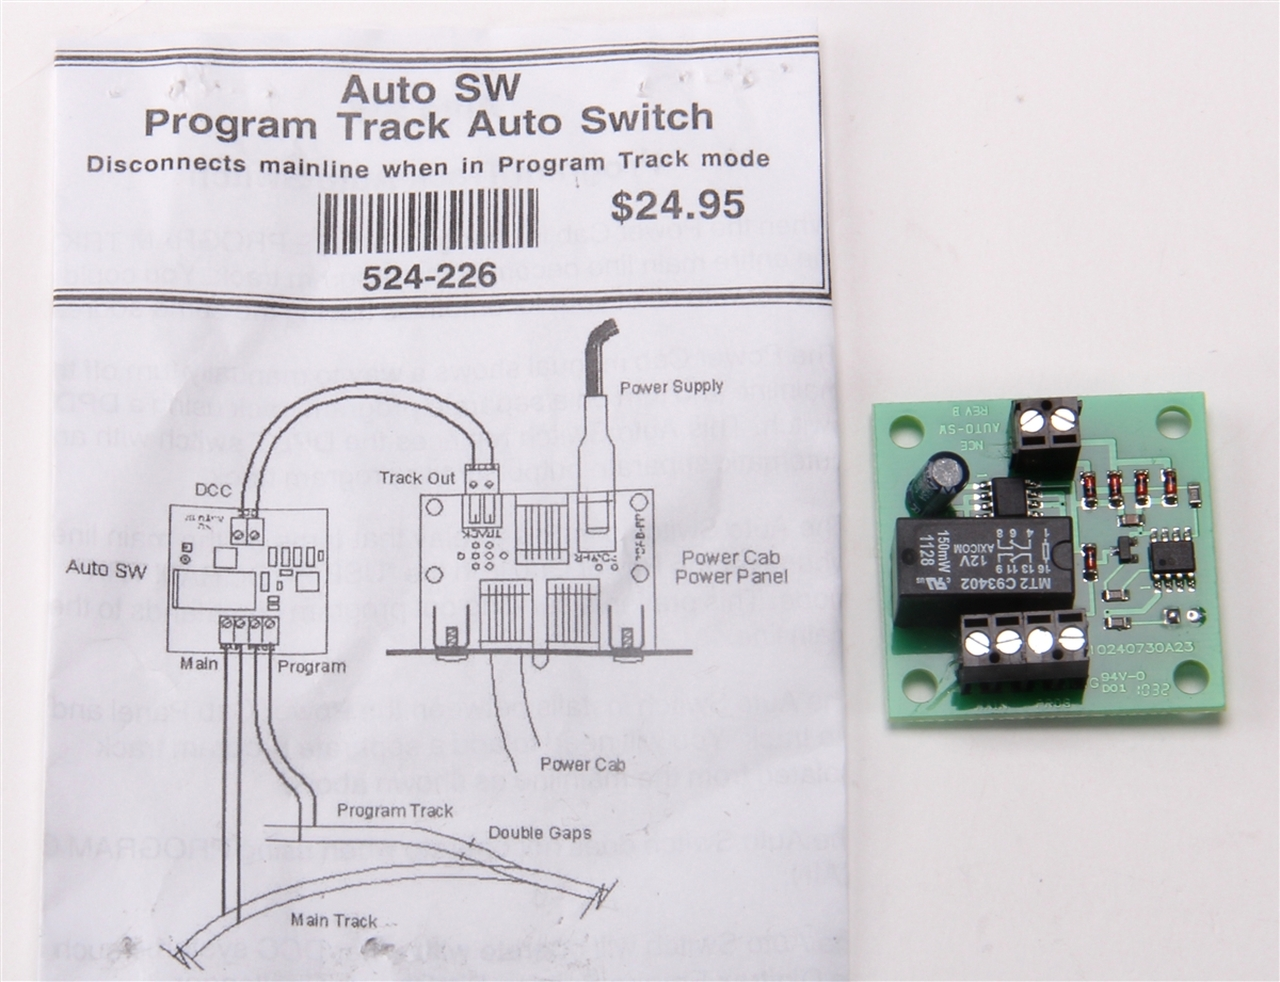 NCE 524226 (Auto-SW) Program Track Auto Switch